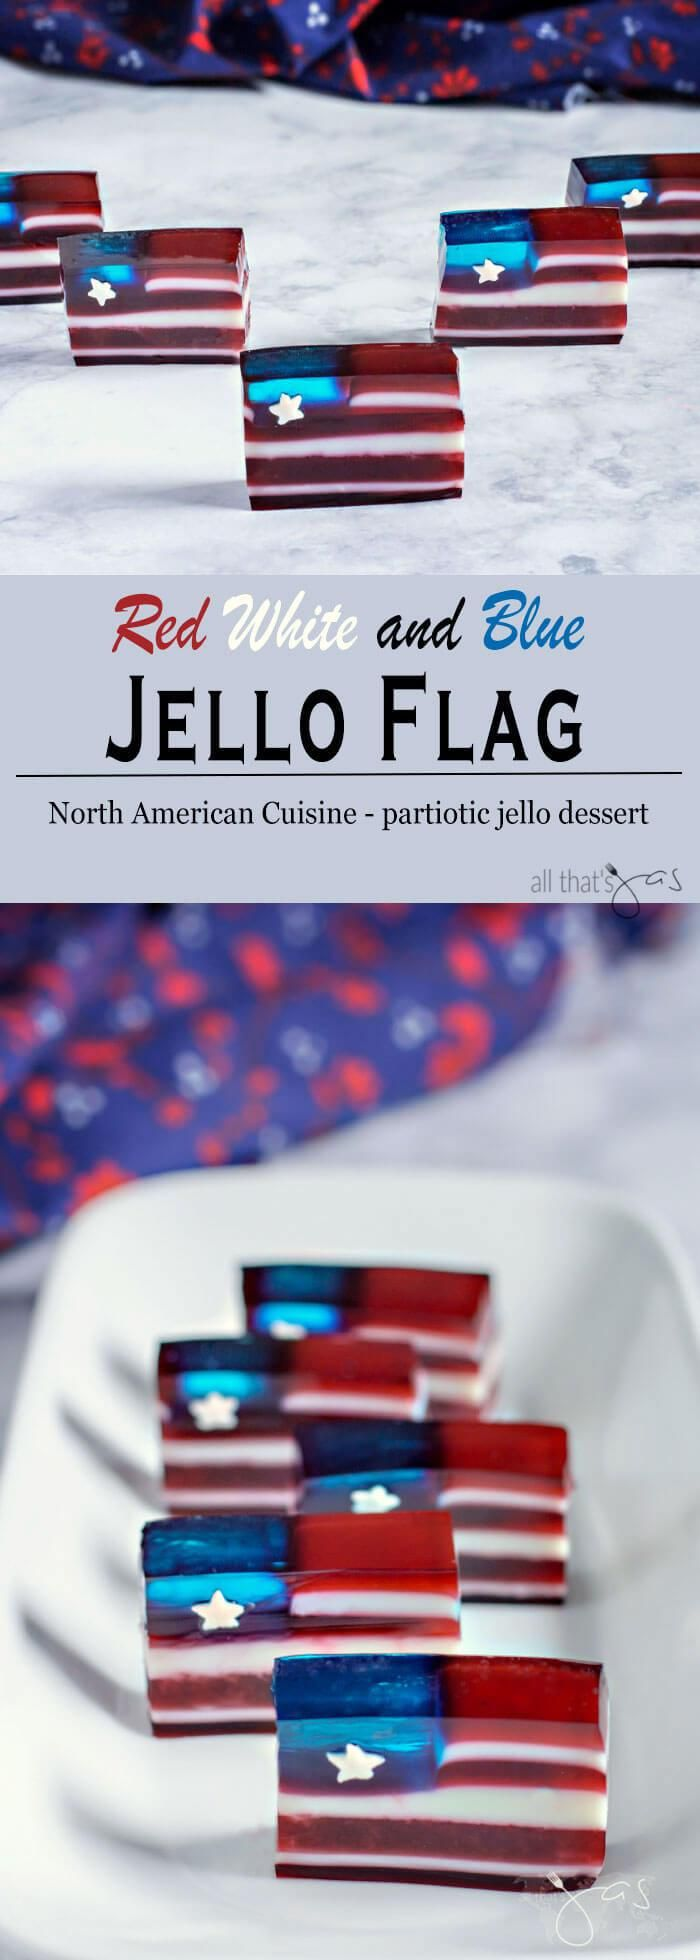 Light, red white and blue jello dessert in a shape of the American flag is a perfect treat to celebrate the Fourth of July.